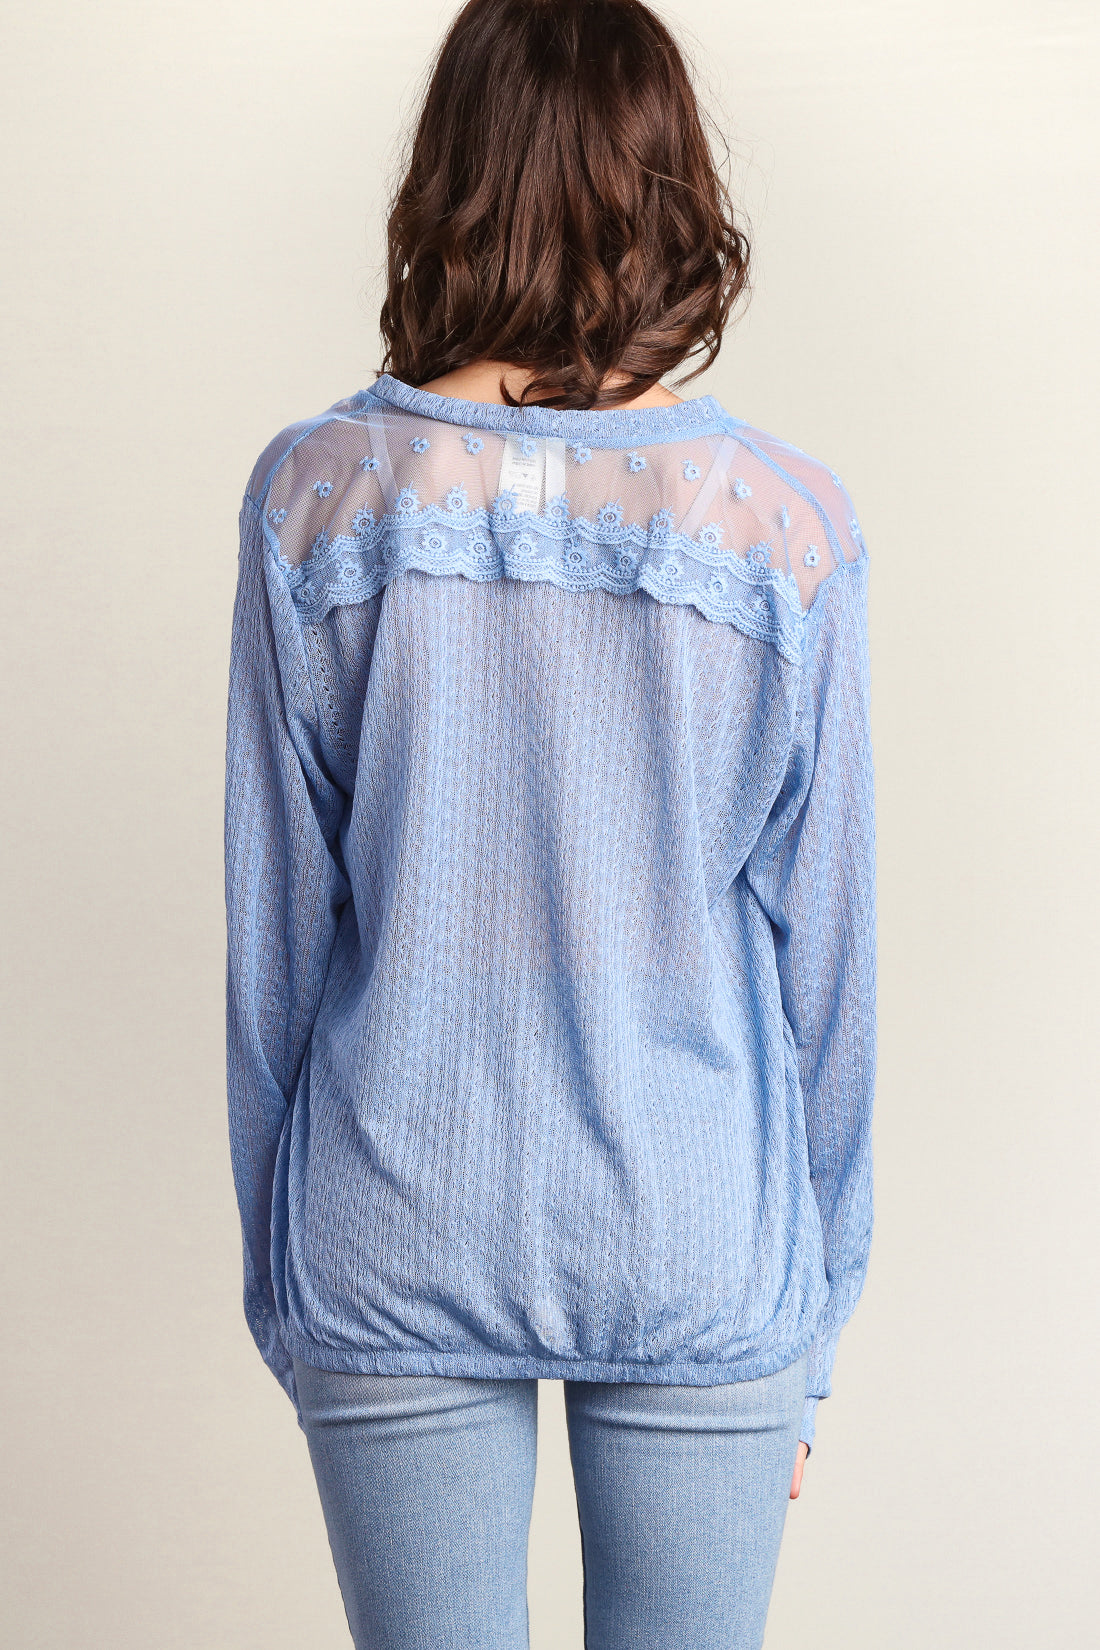 Dusty Blue Button Down Sweater Knit Blouse